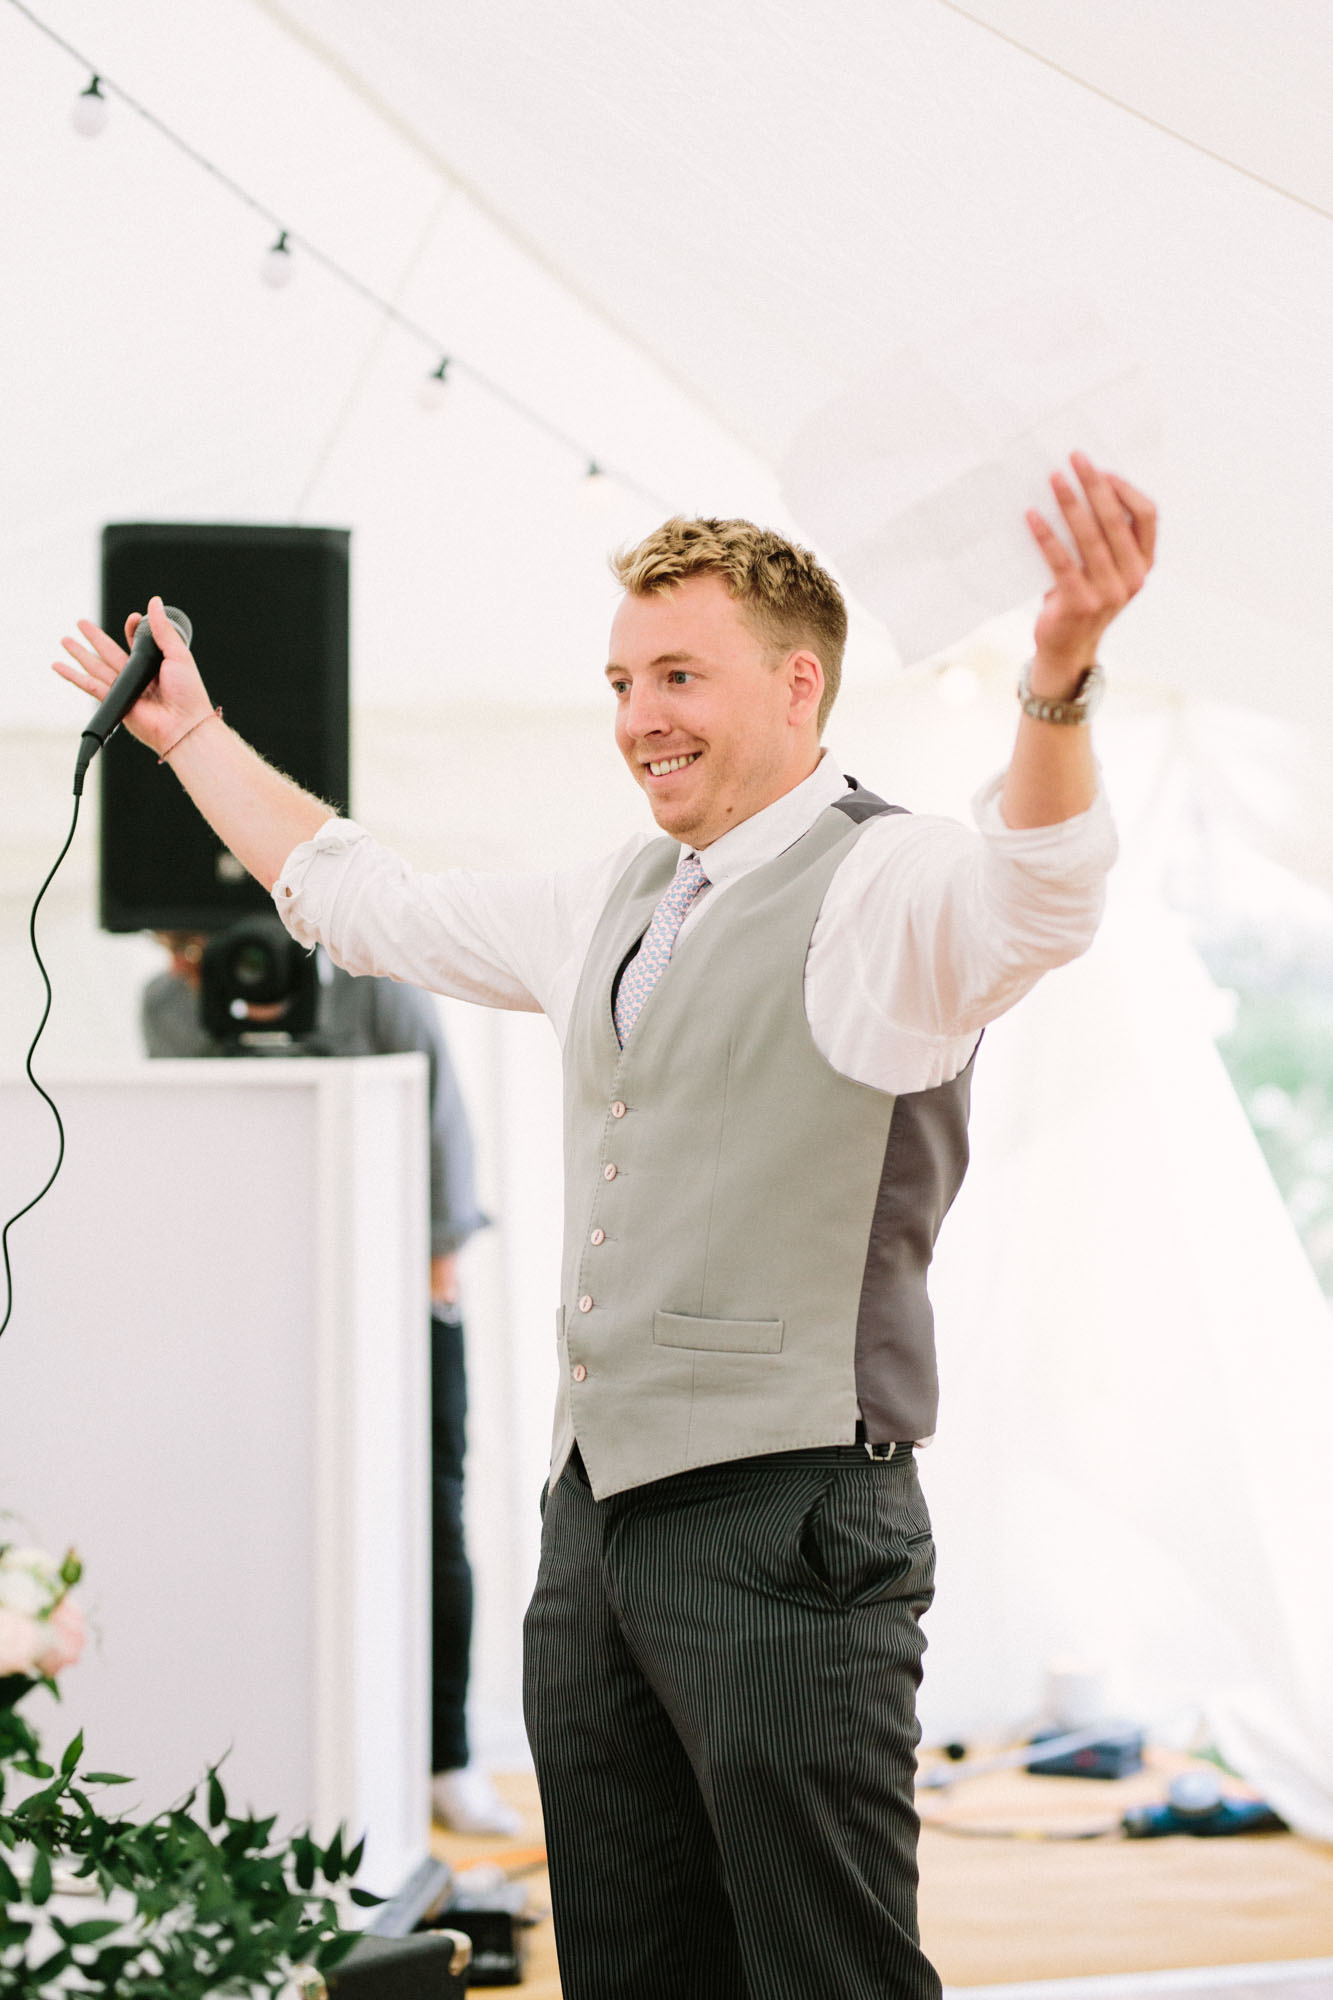 Brother of bride giving speech on wedding day